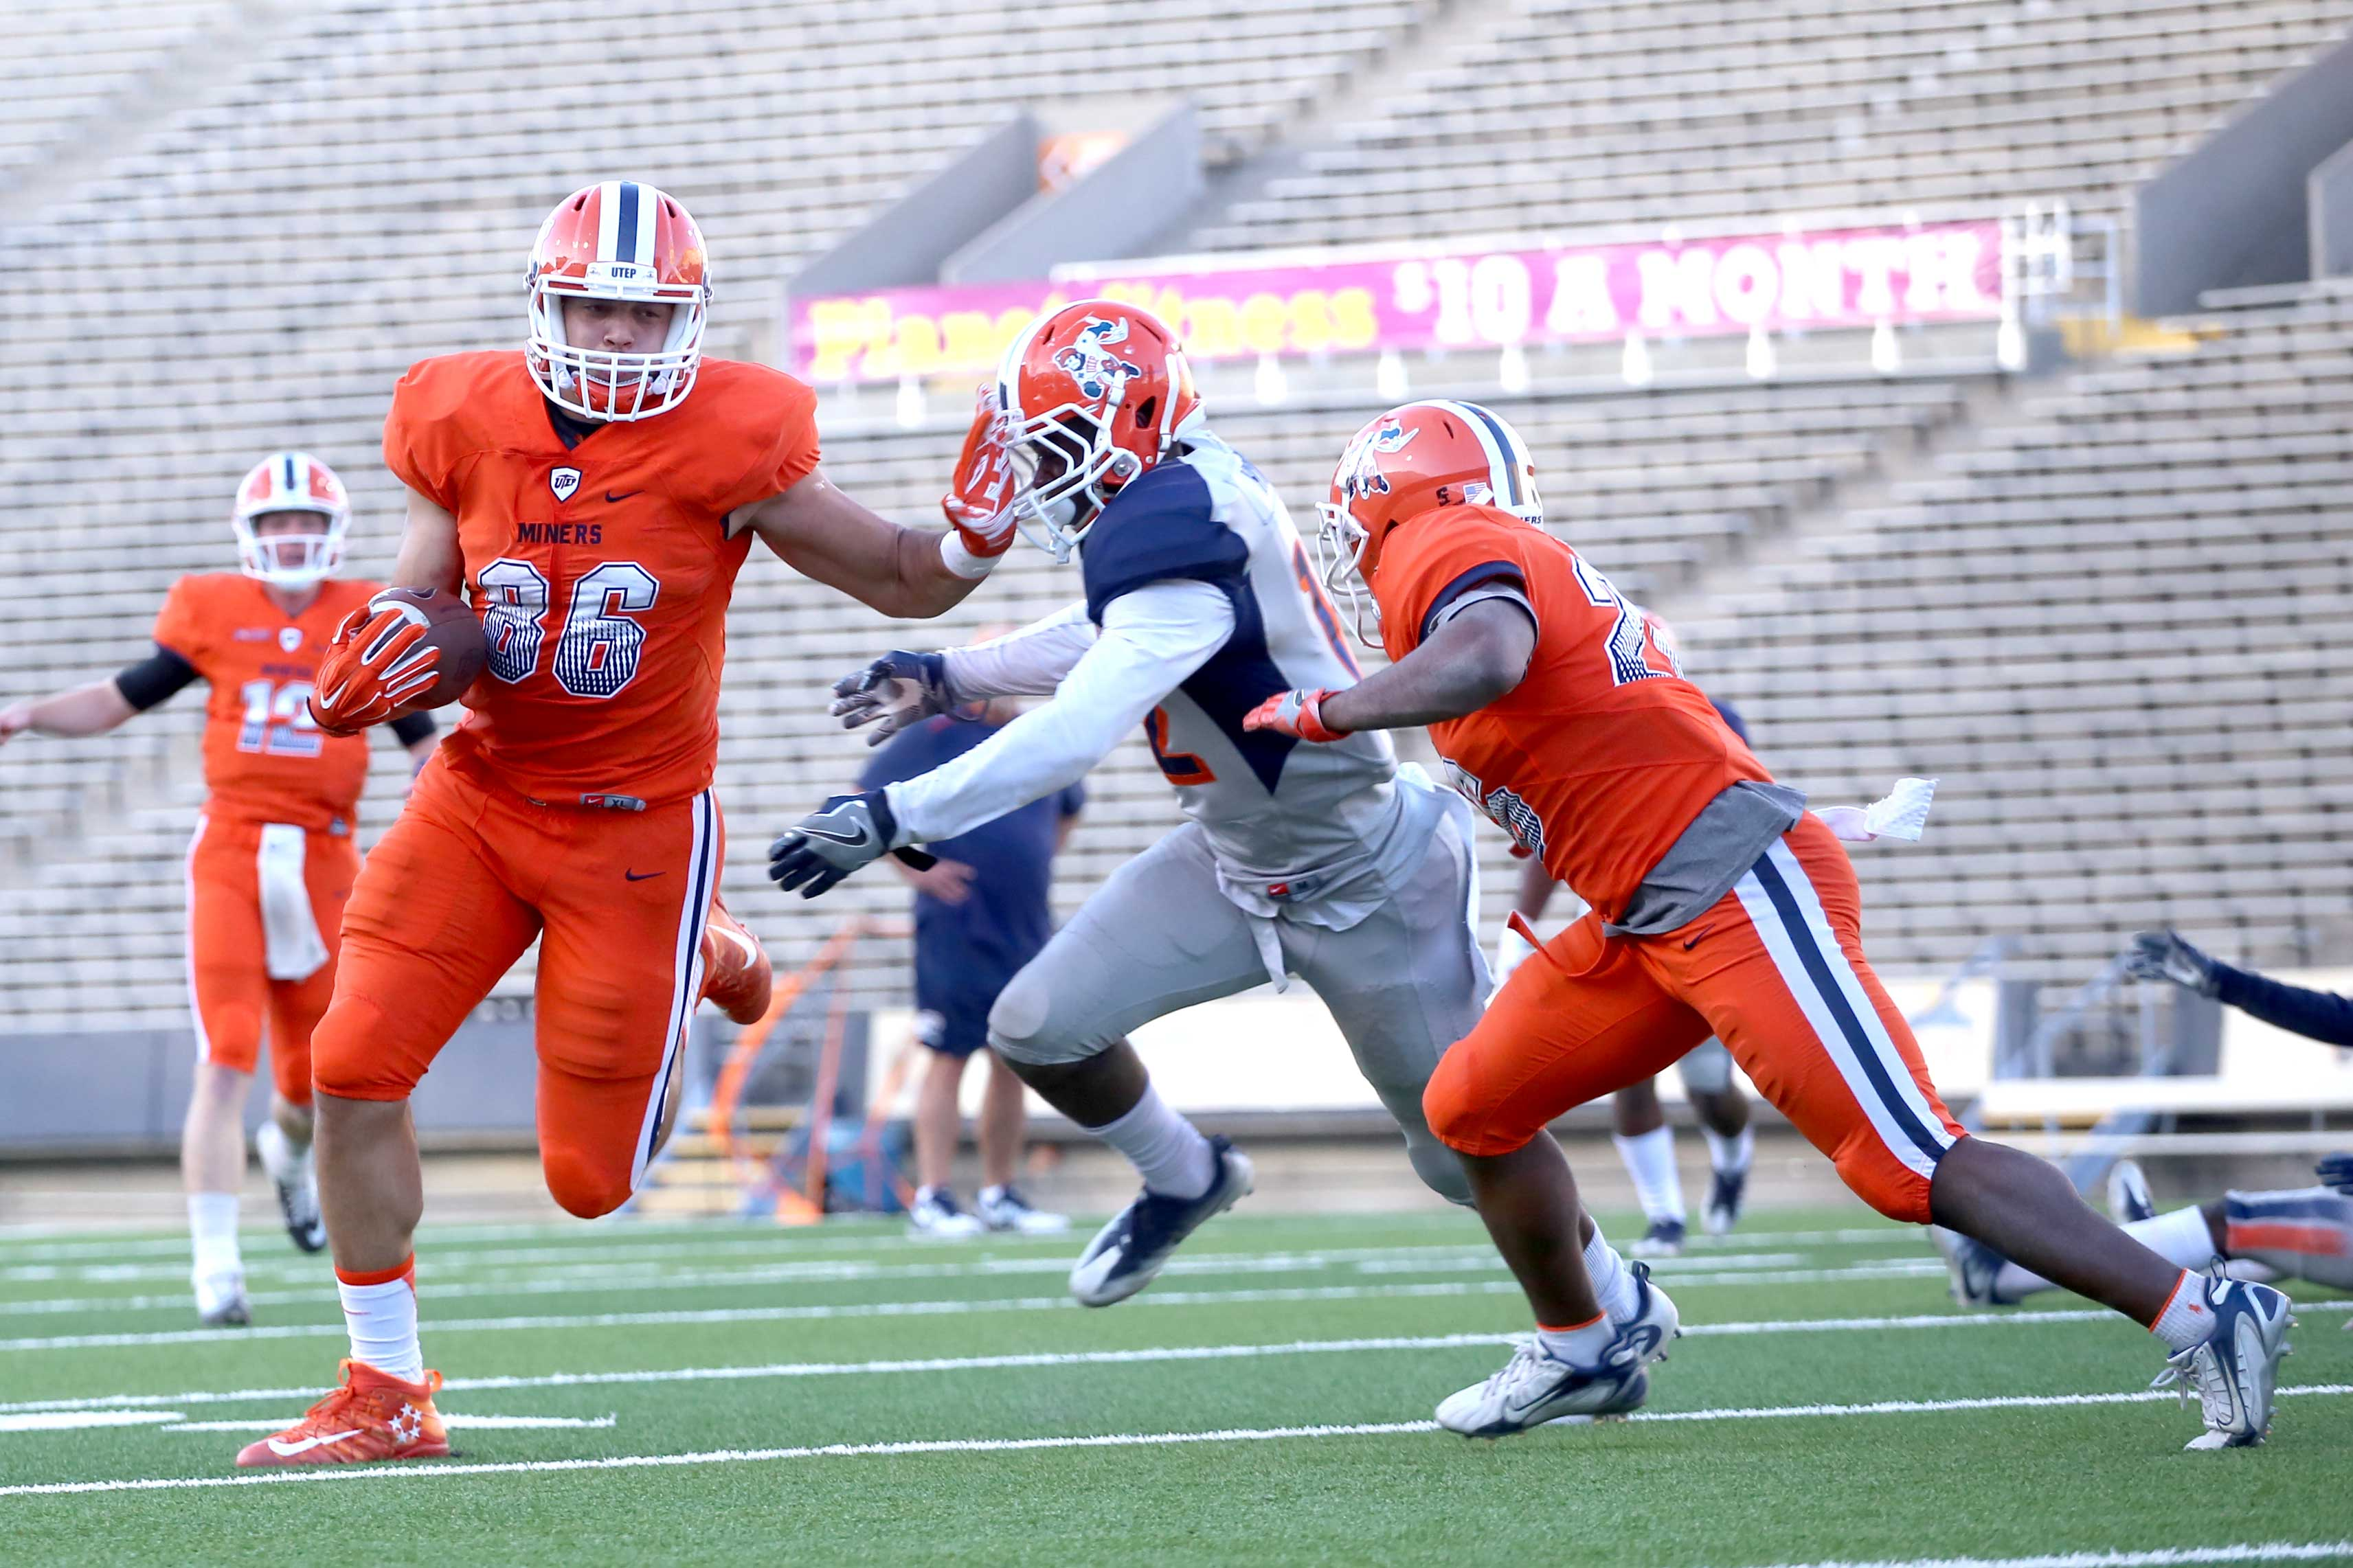 UTEP football held their spring game scrimmage on April 14 at the Sun Bowl.